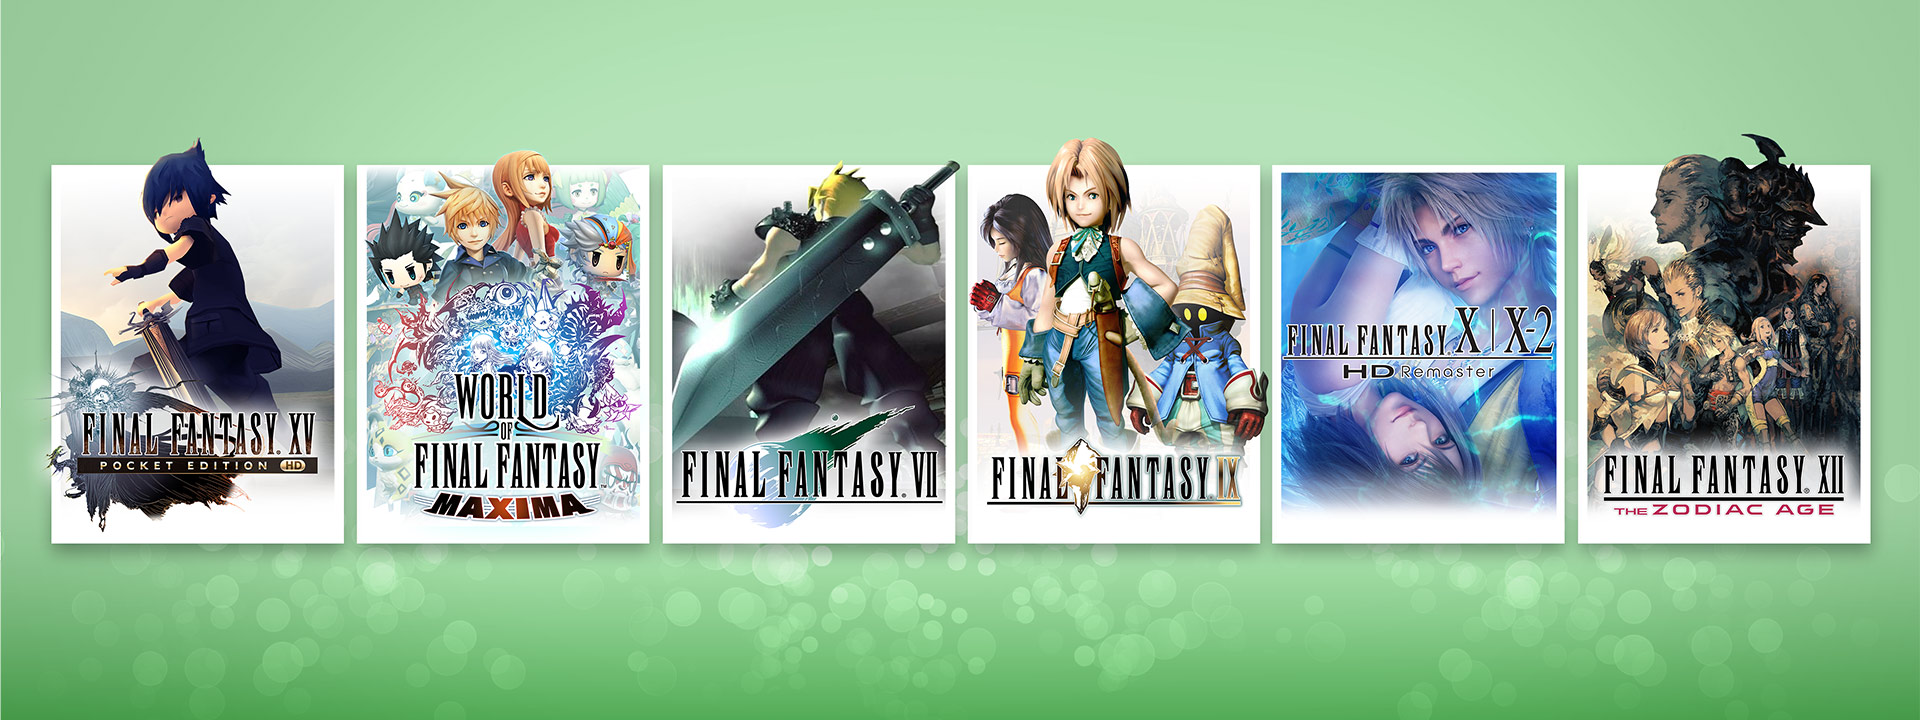 Verpackungsbilder für FINAL FANTASY XV POCKET EDITION HD, WORLD OF FINAL FANTASY MAXIMA, FINAL FANTASY VII, FINAL FANTASY IX, FINAL FANTASY X | X-2 HD Remaster und FINAL FANTASY XII THE ZODIAC AGE